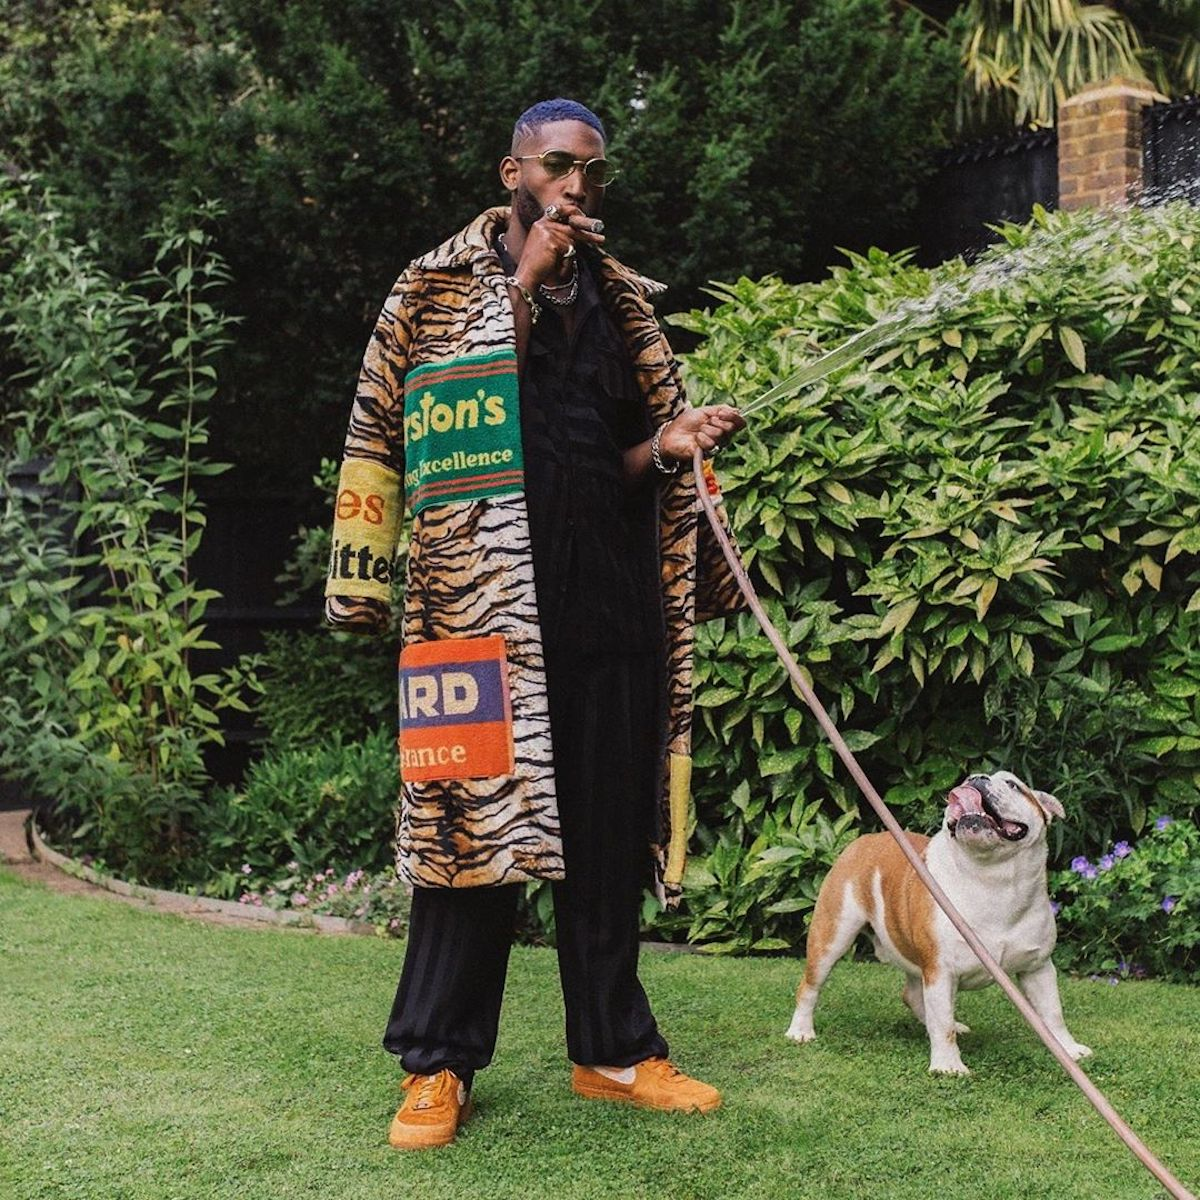 SPOTTED: Tinie Tempah takes to the Garden in Tiger-Print Adam Jones Coat